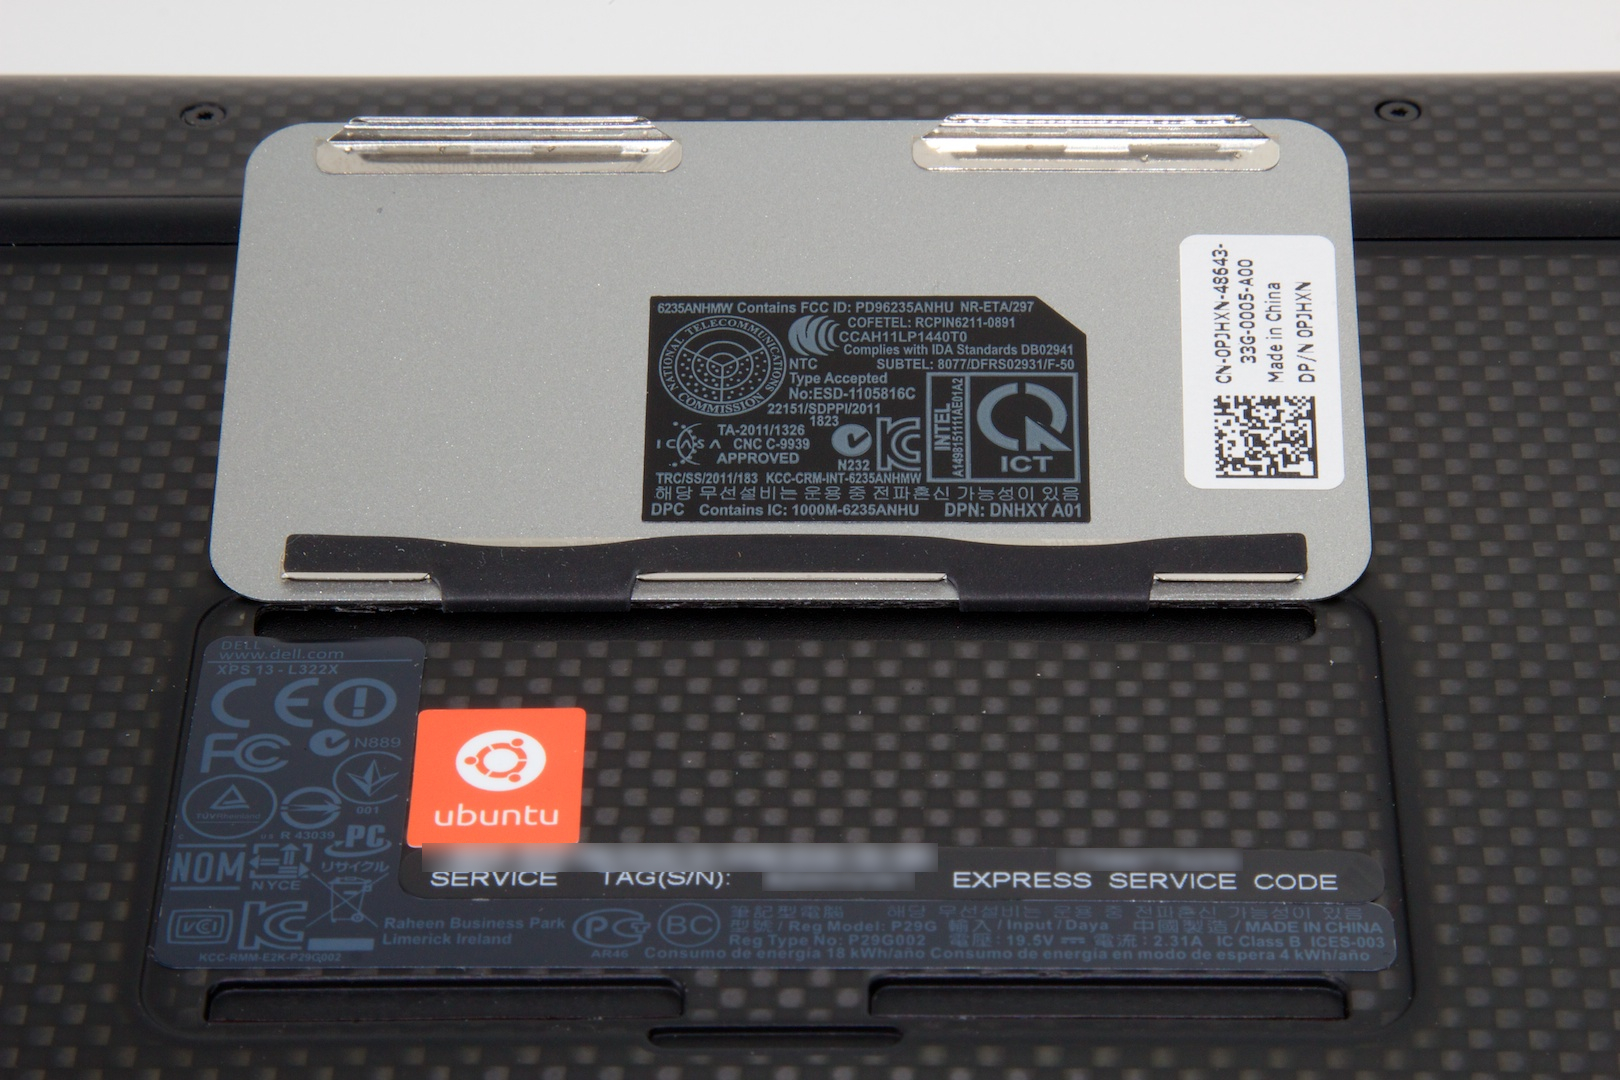 Beneath the XPS badge on the bottom of the Ultrabook is the service tag, serial number, and a neat little Ubuntu sticker.